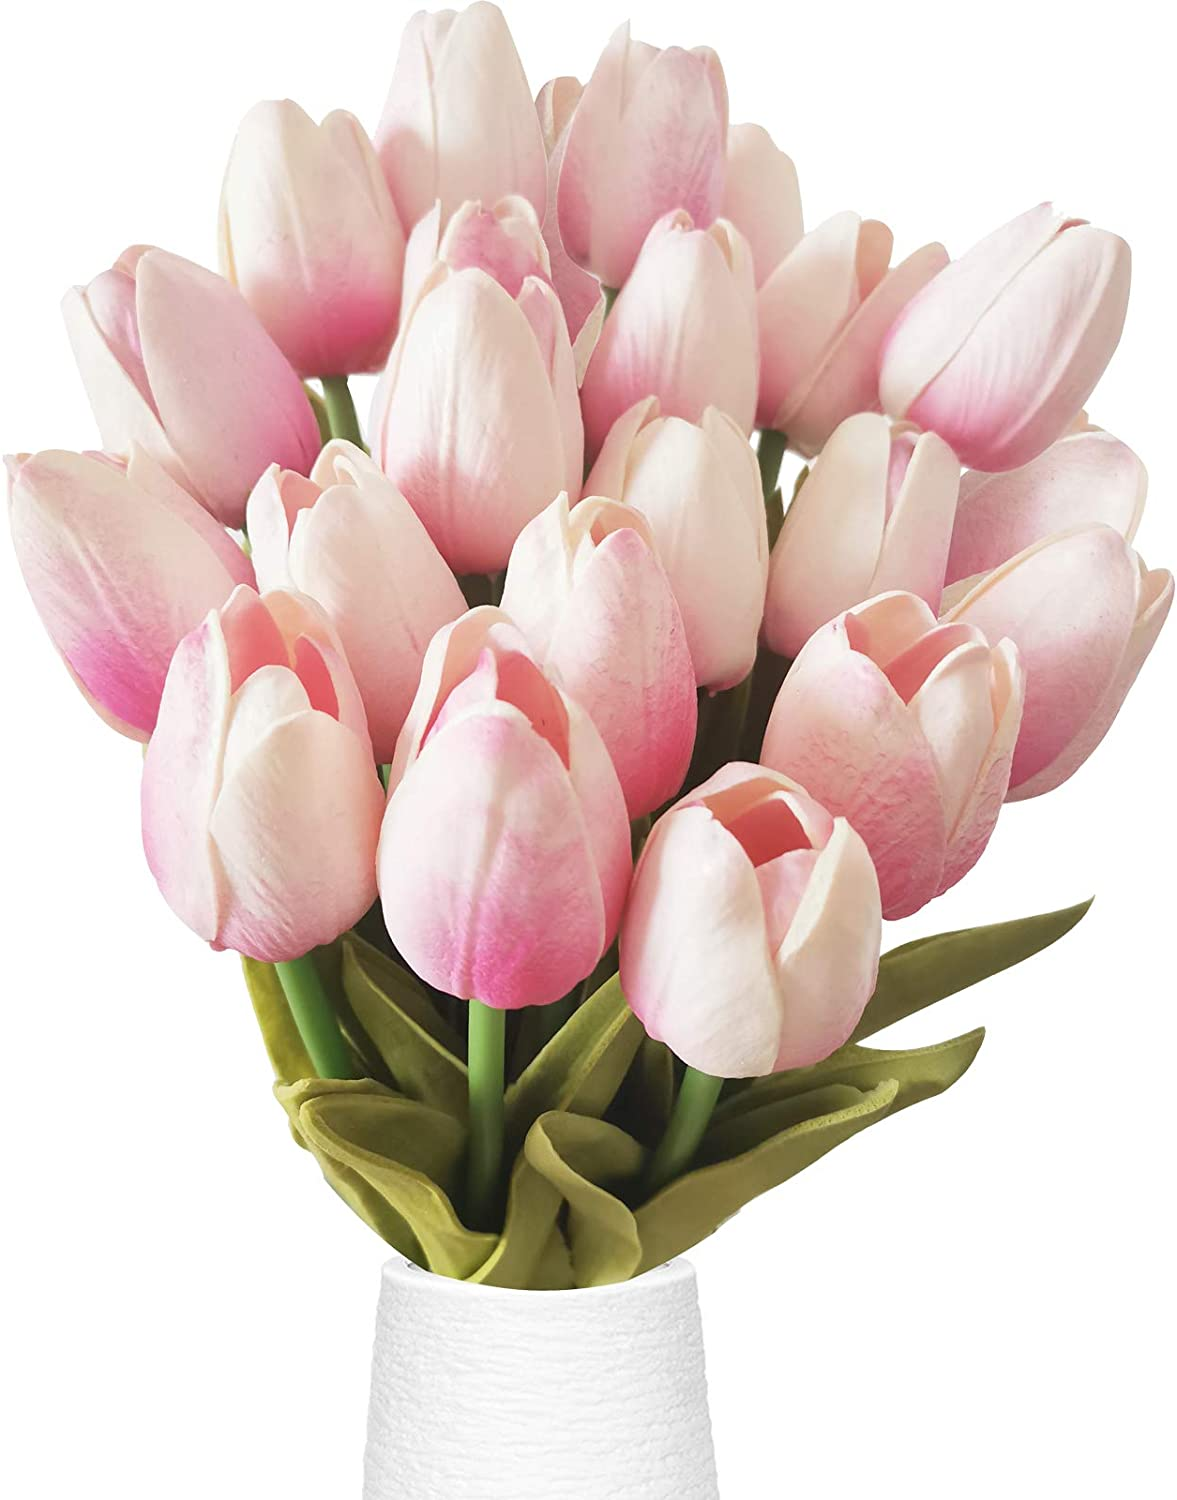 Tulips Lake 20 Heads Tulips Artificial Flowers Real Touch Tulips Silk Artificial Tulips Flower for Bouquet Room Centerpiece Party Wedding Office Home Decoration Thanksgiving Gift 13.4